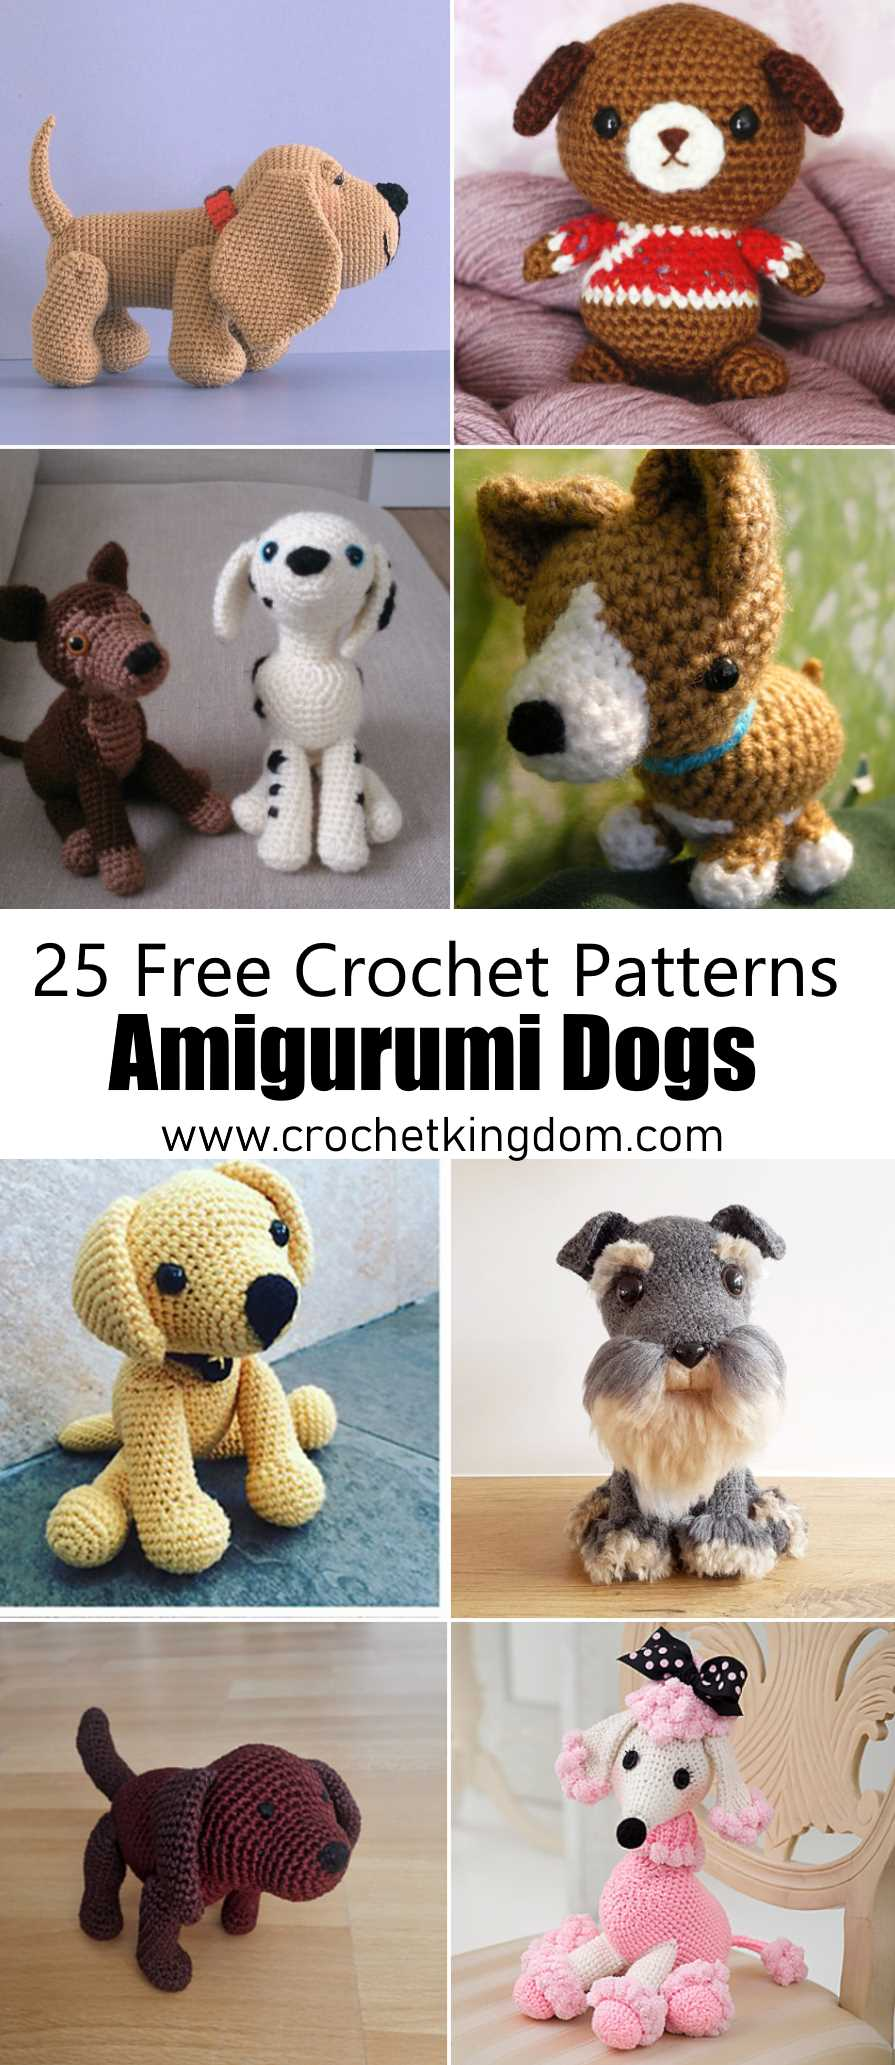 Crochet amigurumi dog in sweater (free crochet pattern) | Mindy | 2065x895